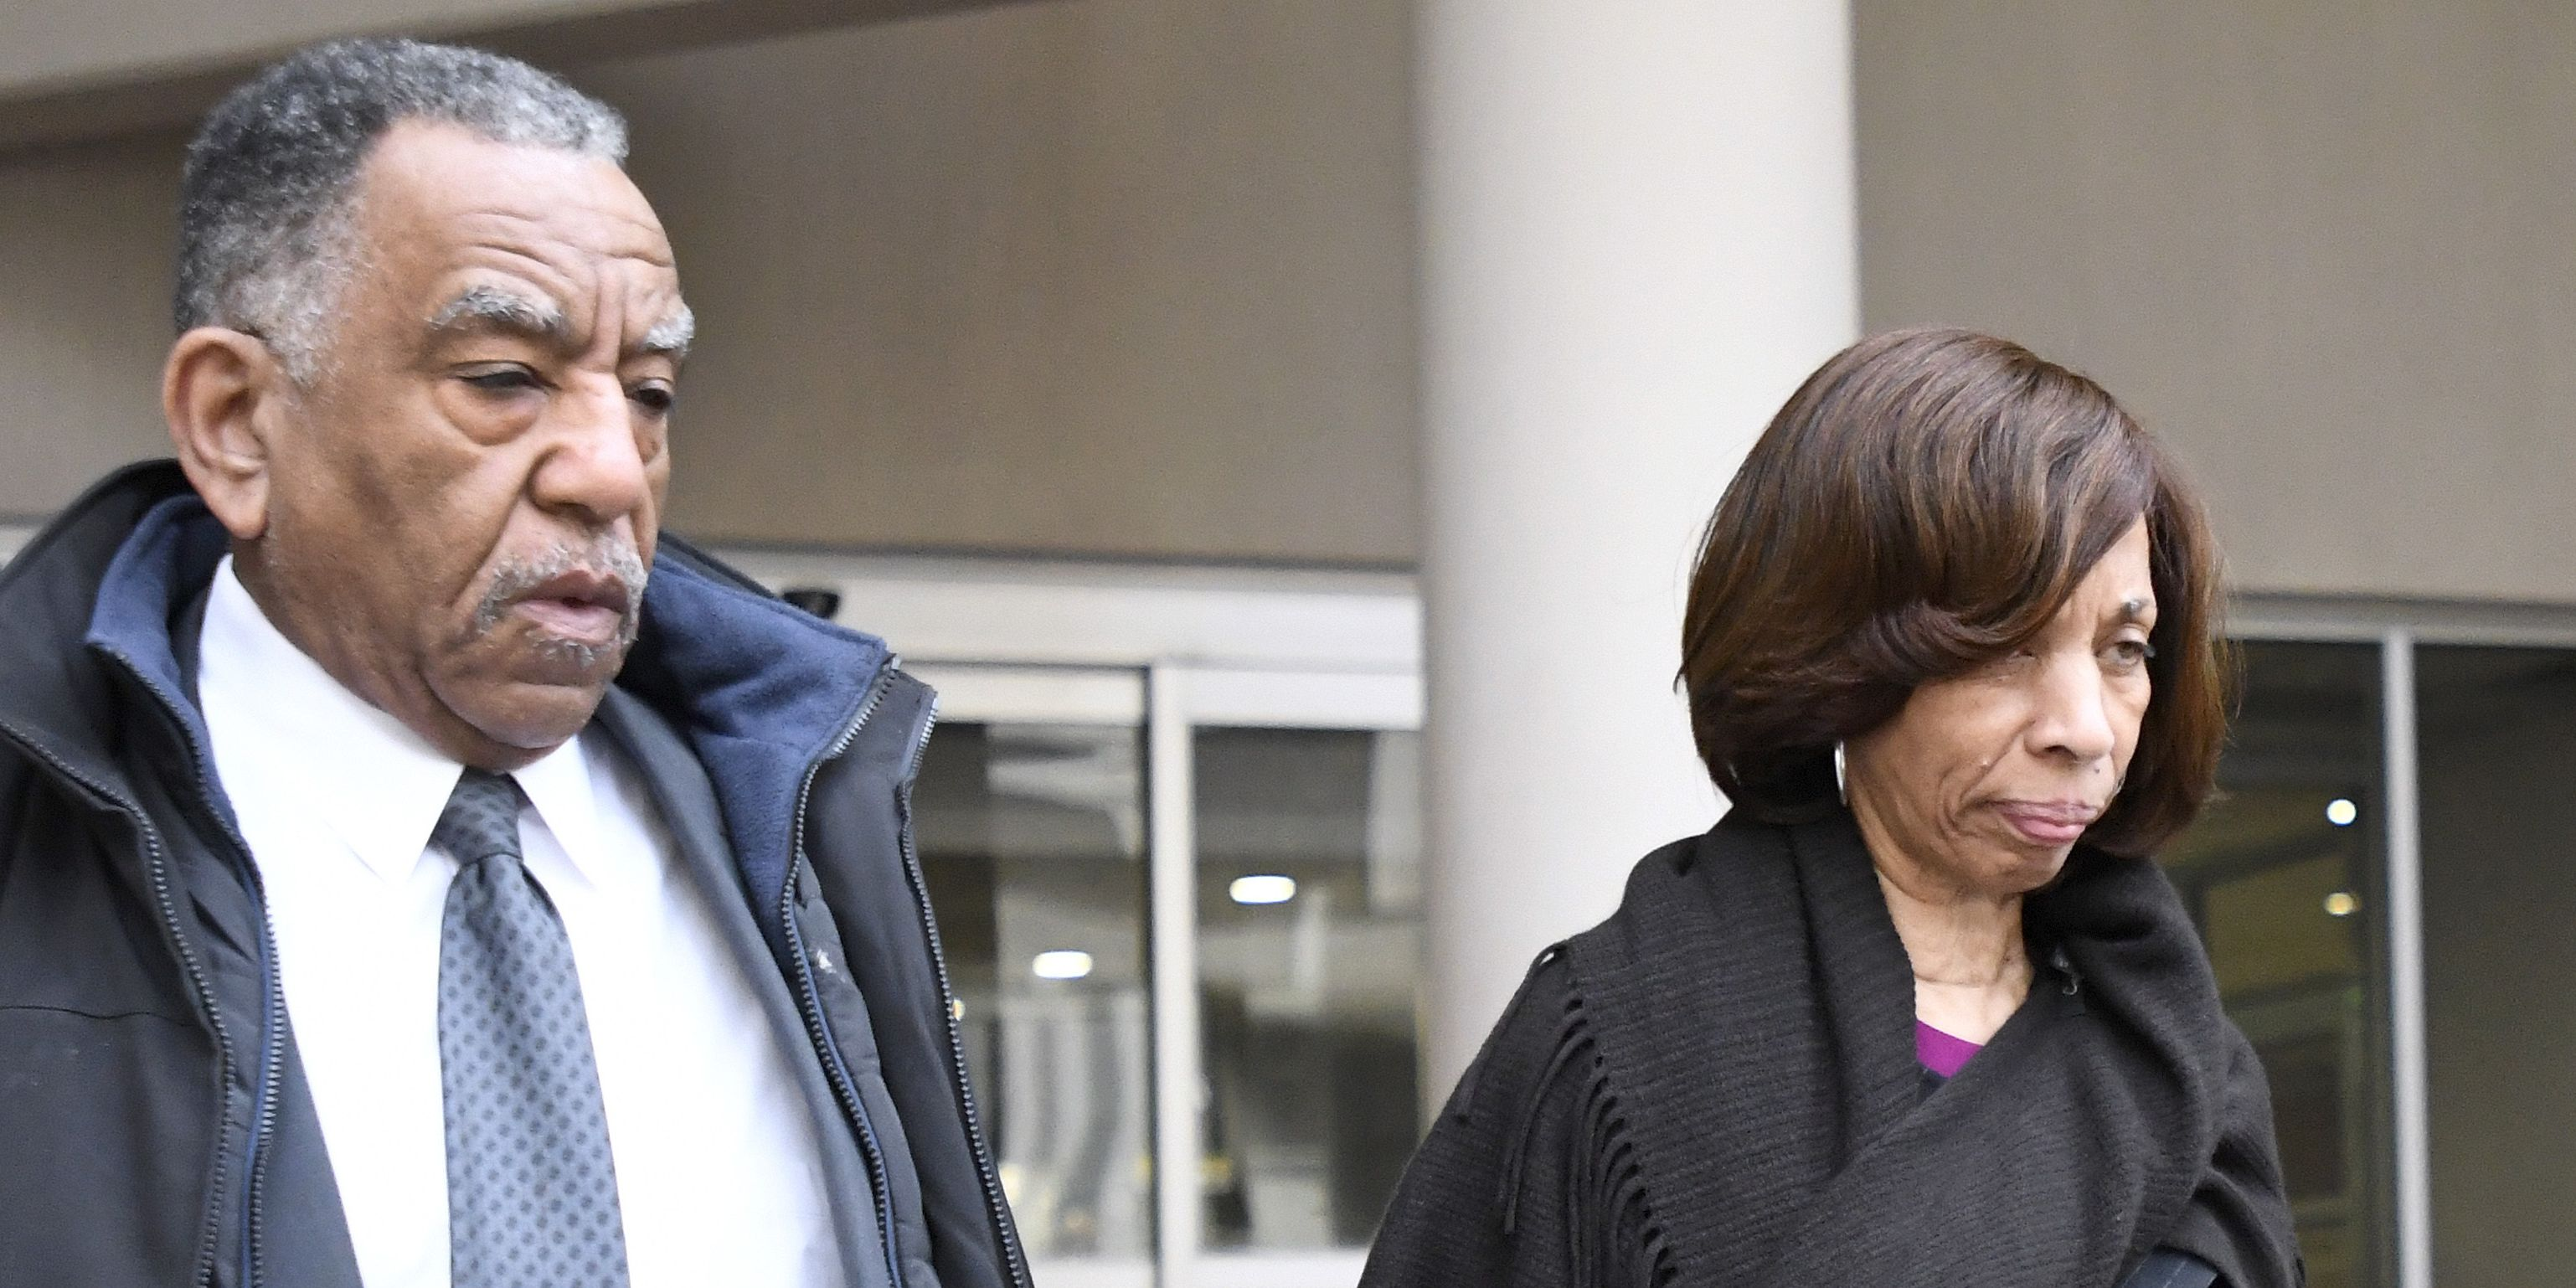 Former Baltimore mayor enters guilty pleas in fraud case